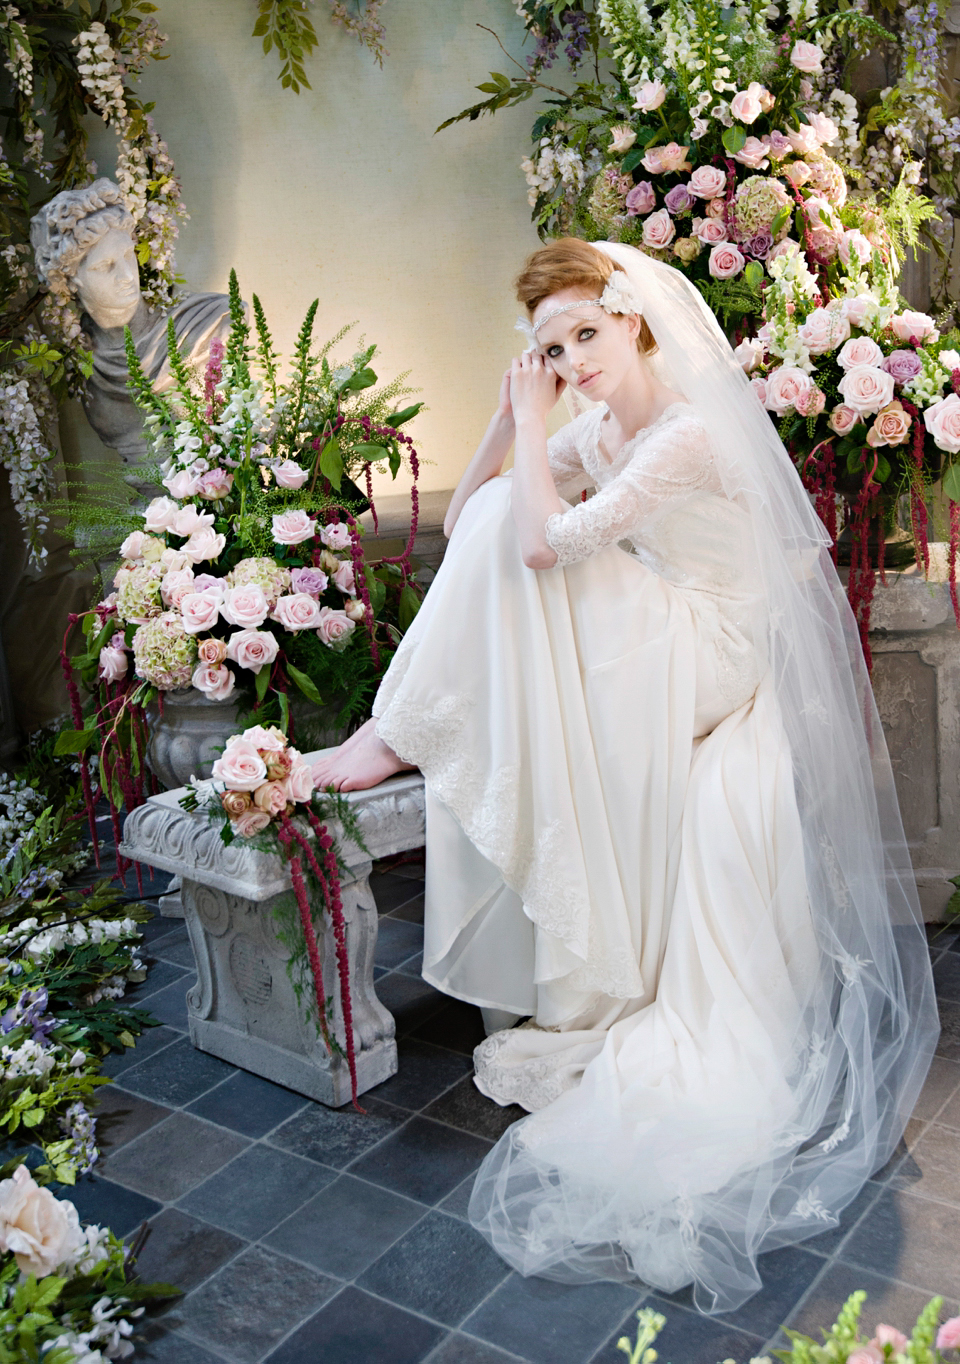 Entice Wedding Dress from Terry Fox's Siren Song Collection